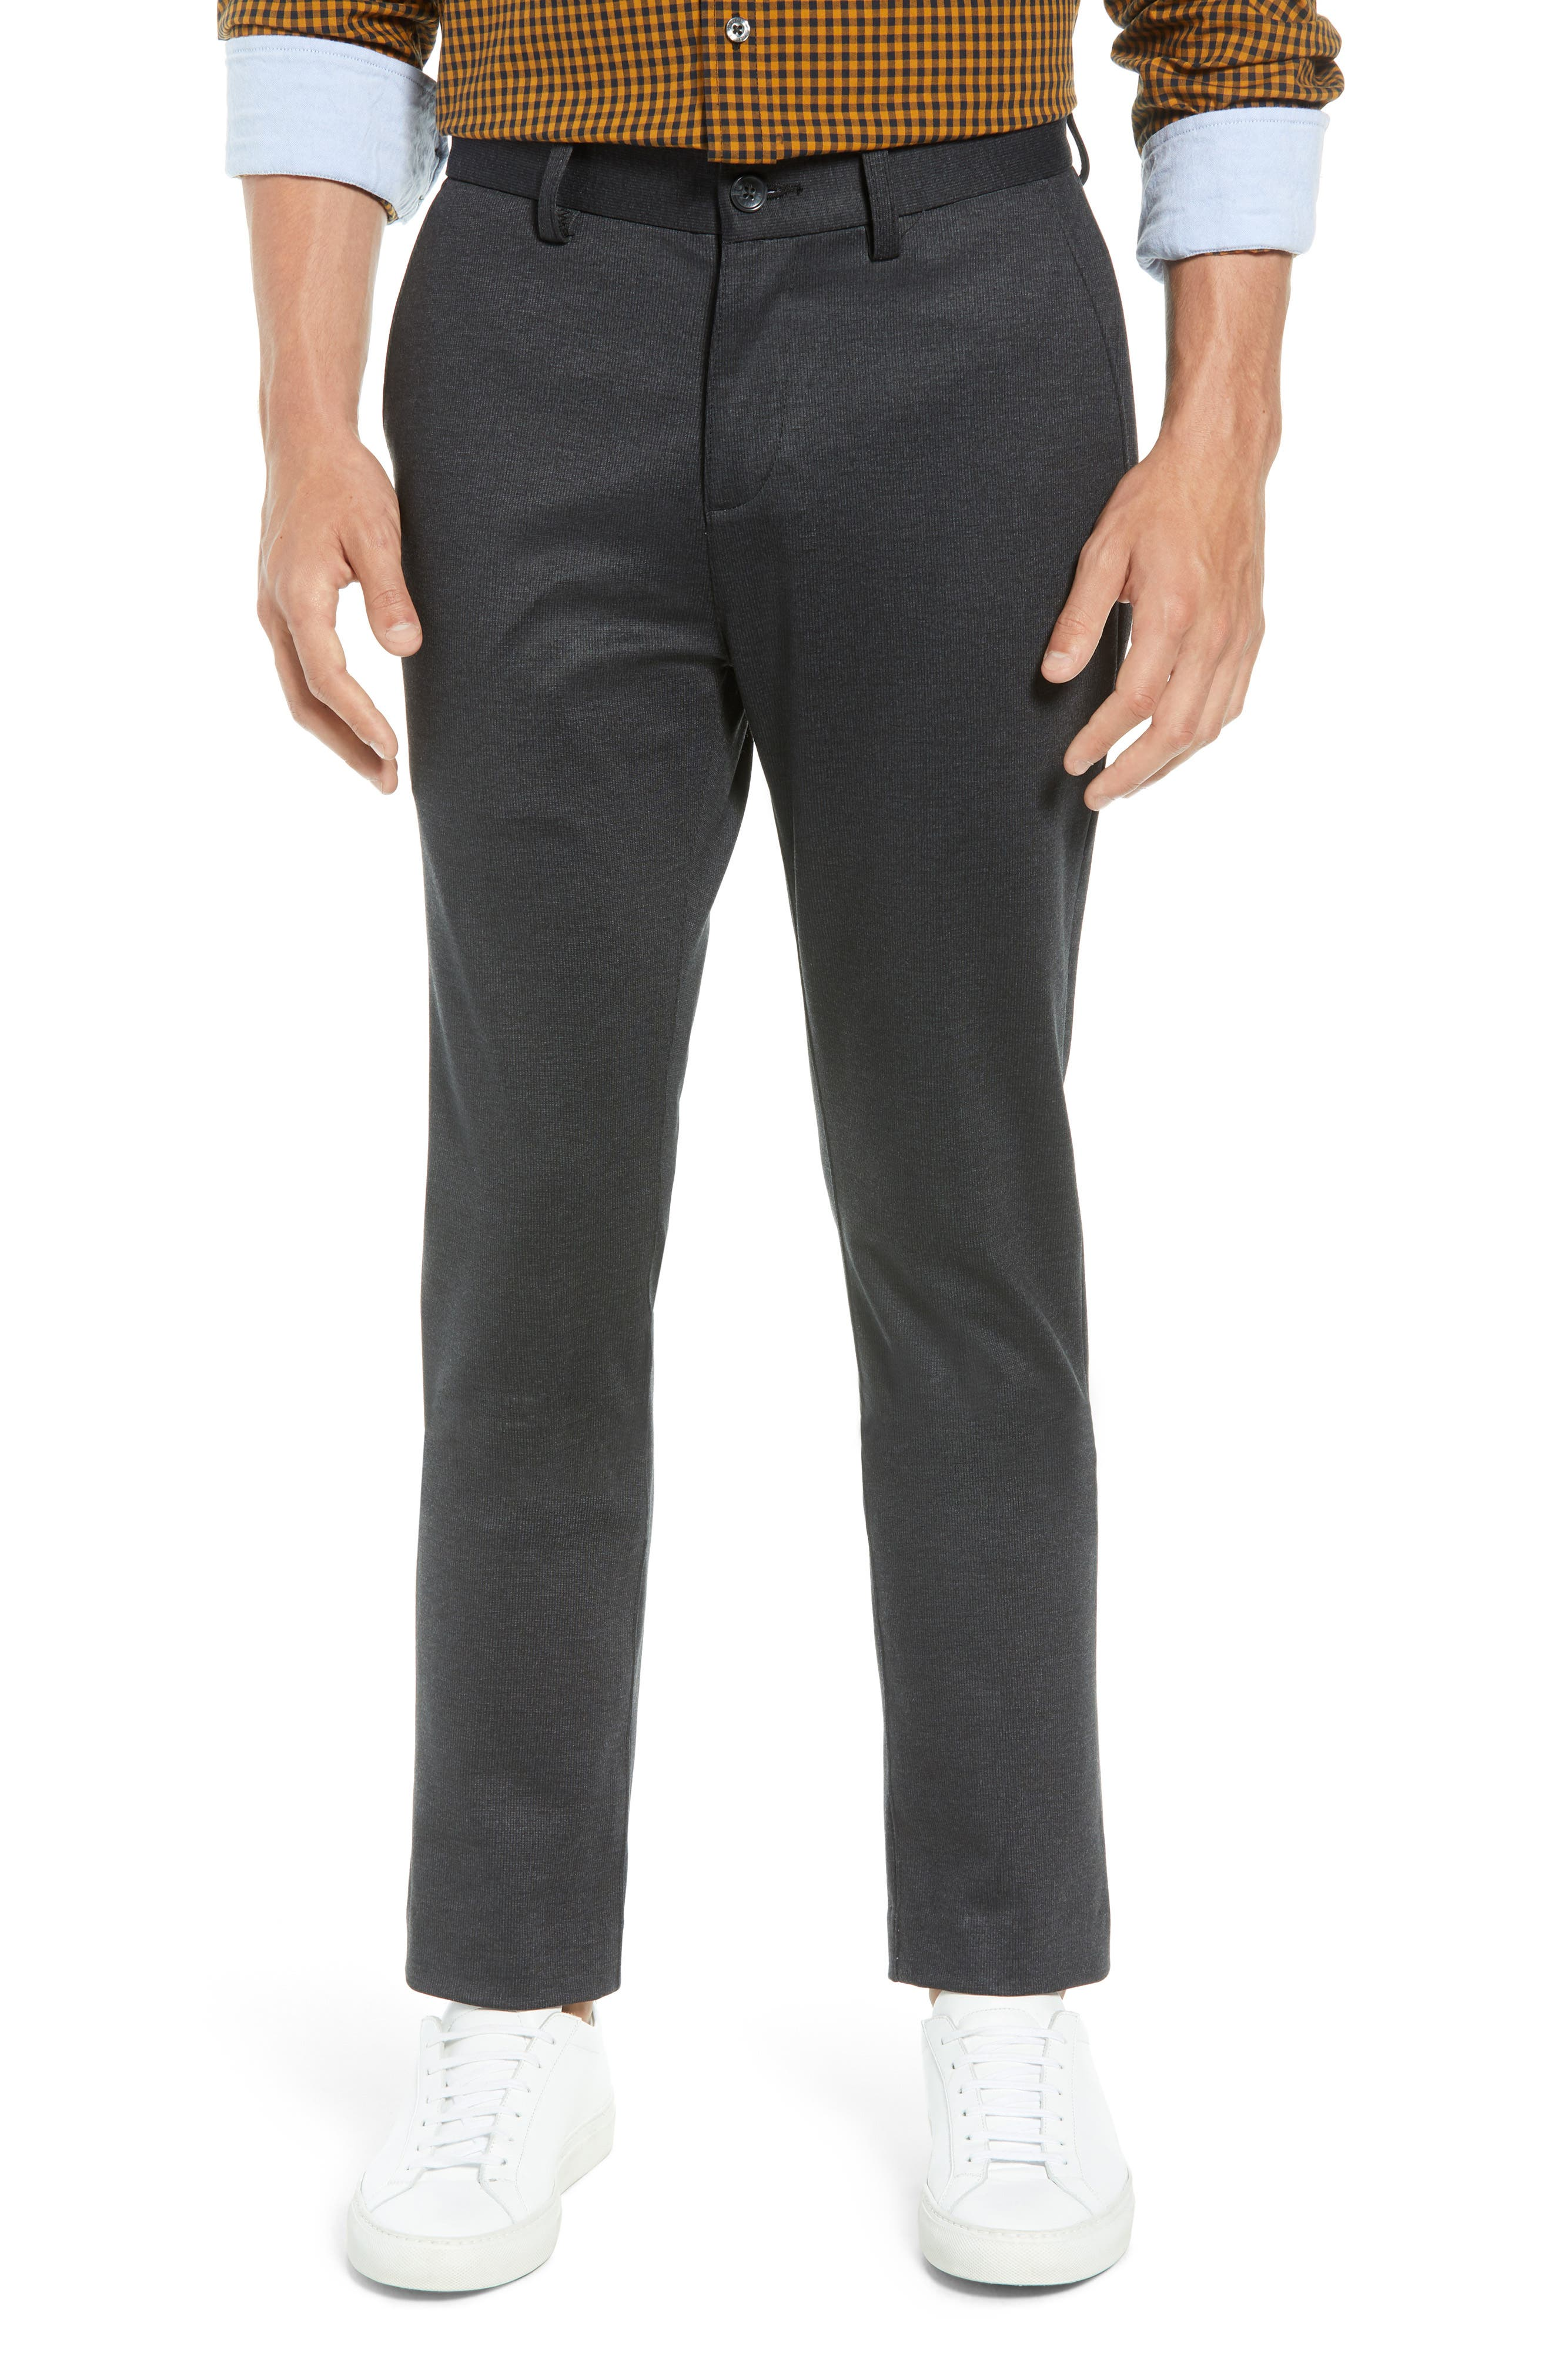 BEN SHERMAN Slim Fit Ponte Knit Trousers in Charcoal